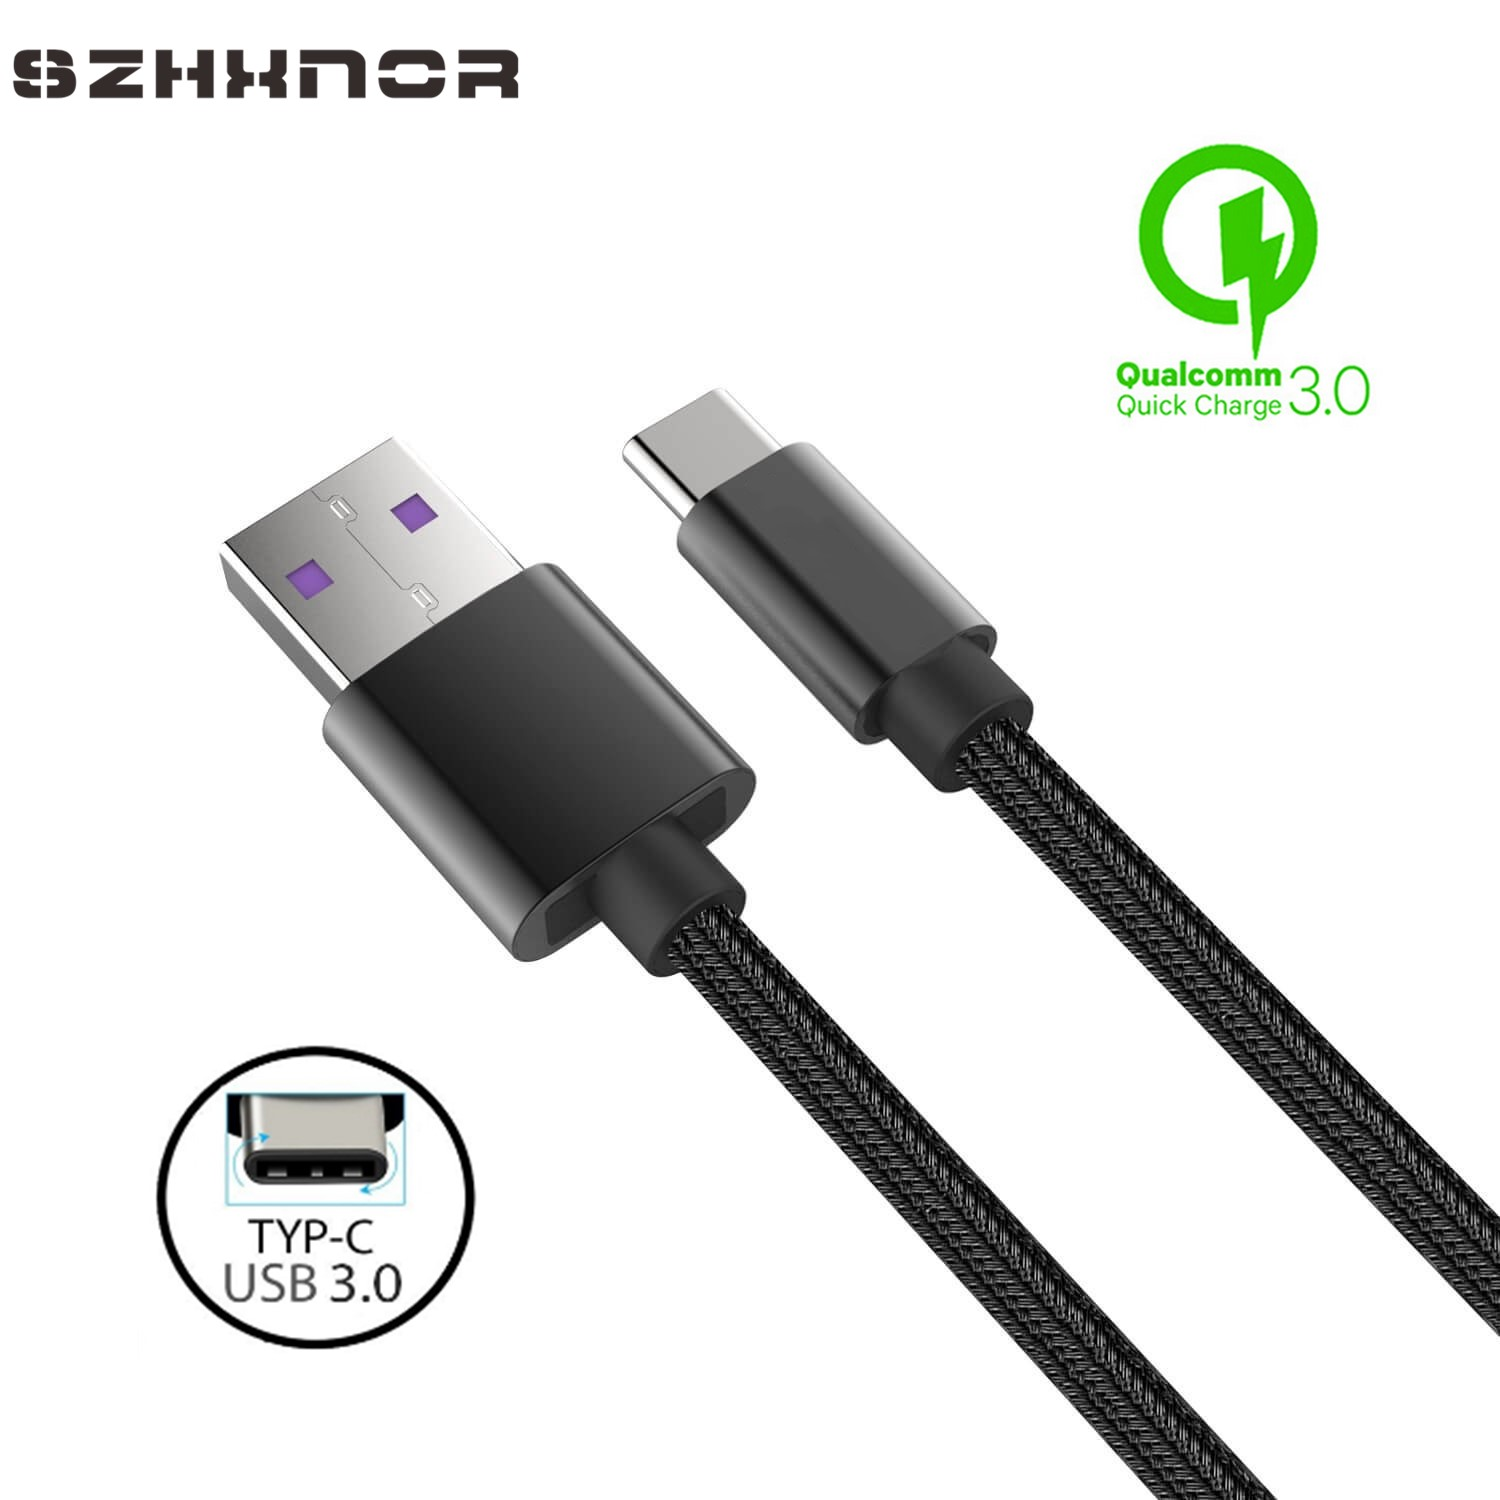 Cellphones & Telecommunications Usb-c To Micro Usb Adapter For Sony Xperia 1 L1 L2 R1 Xz Xz3 Xz1 Xz2 Premium X Compact Xa1 Xa2 Ultra Type-c To Usb Otg Adaptor Mobile Phone Accessories